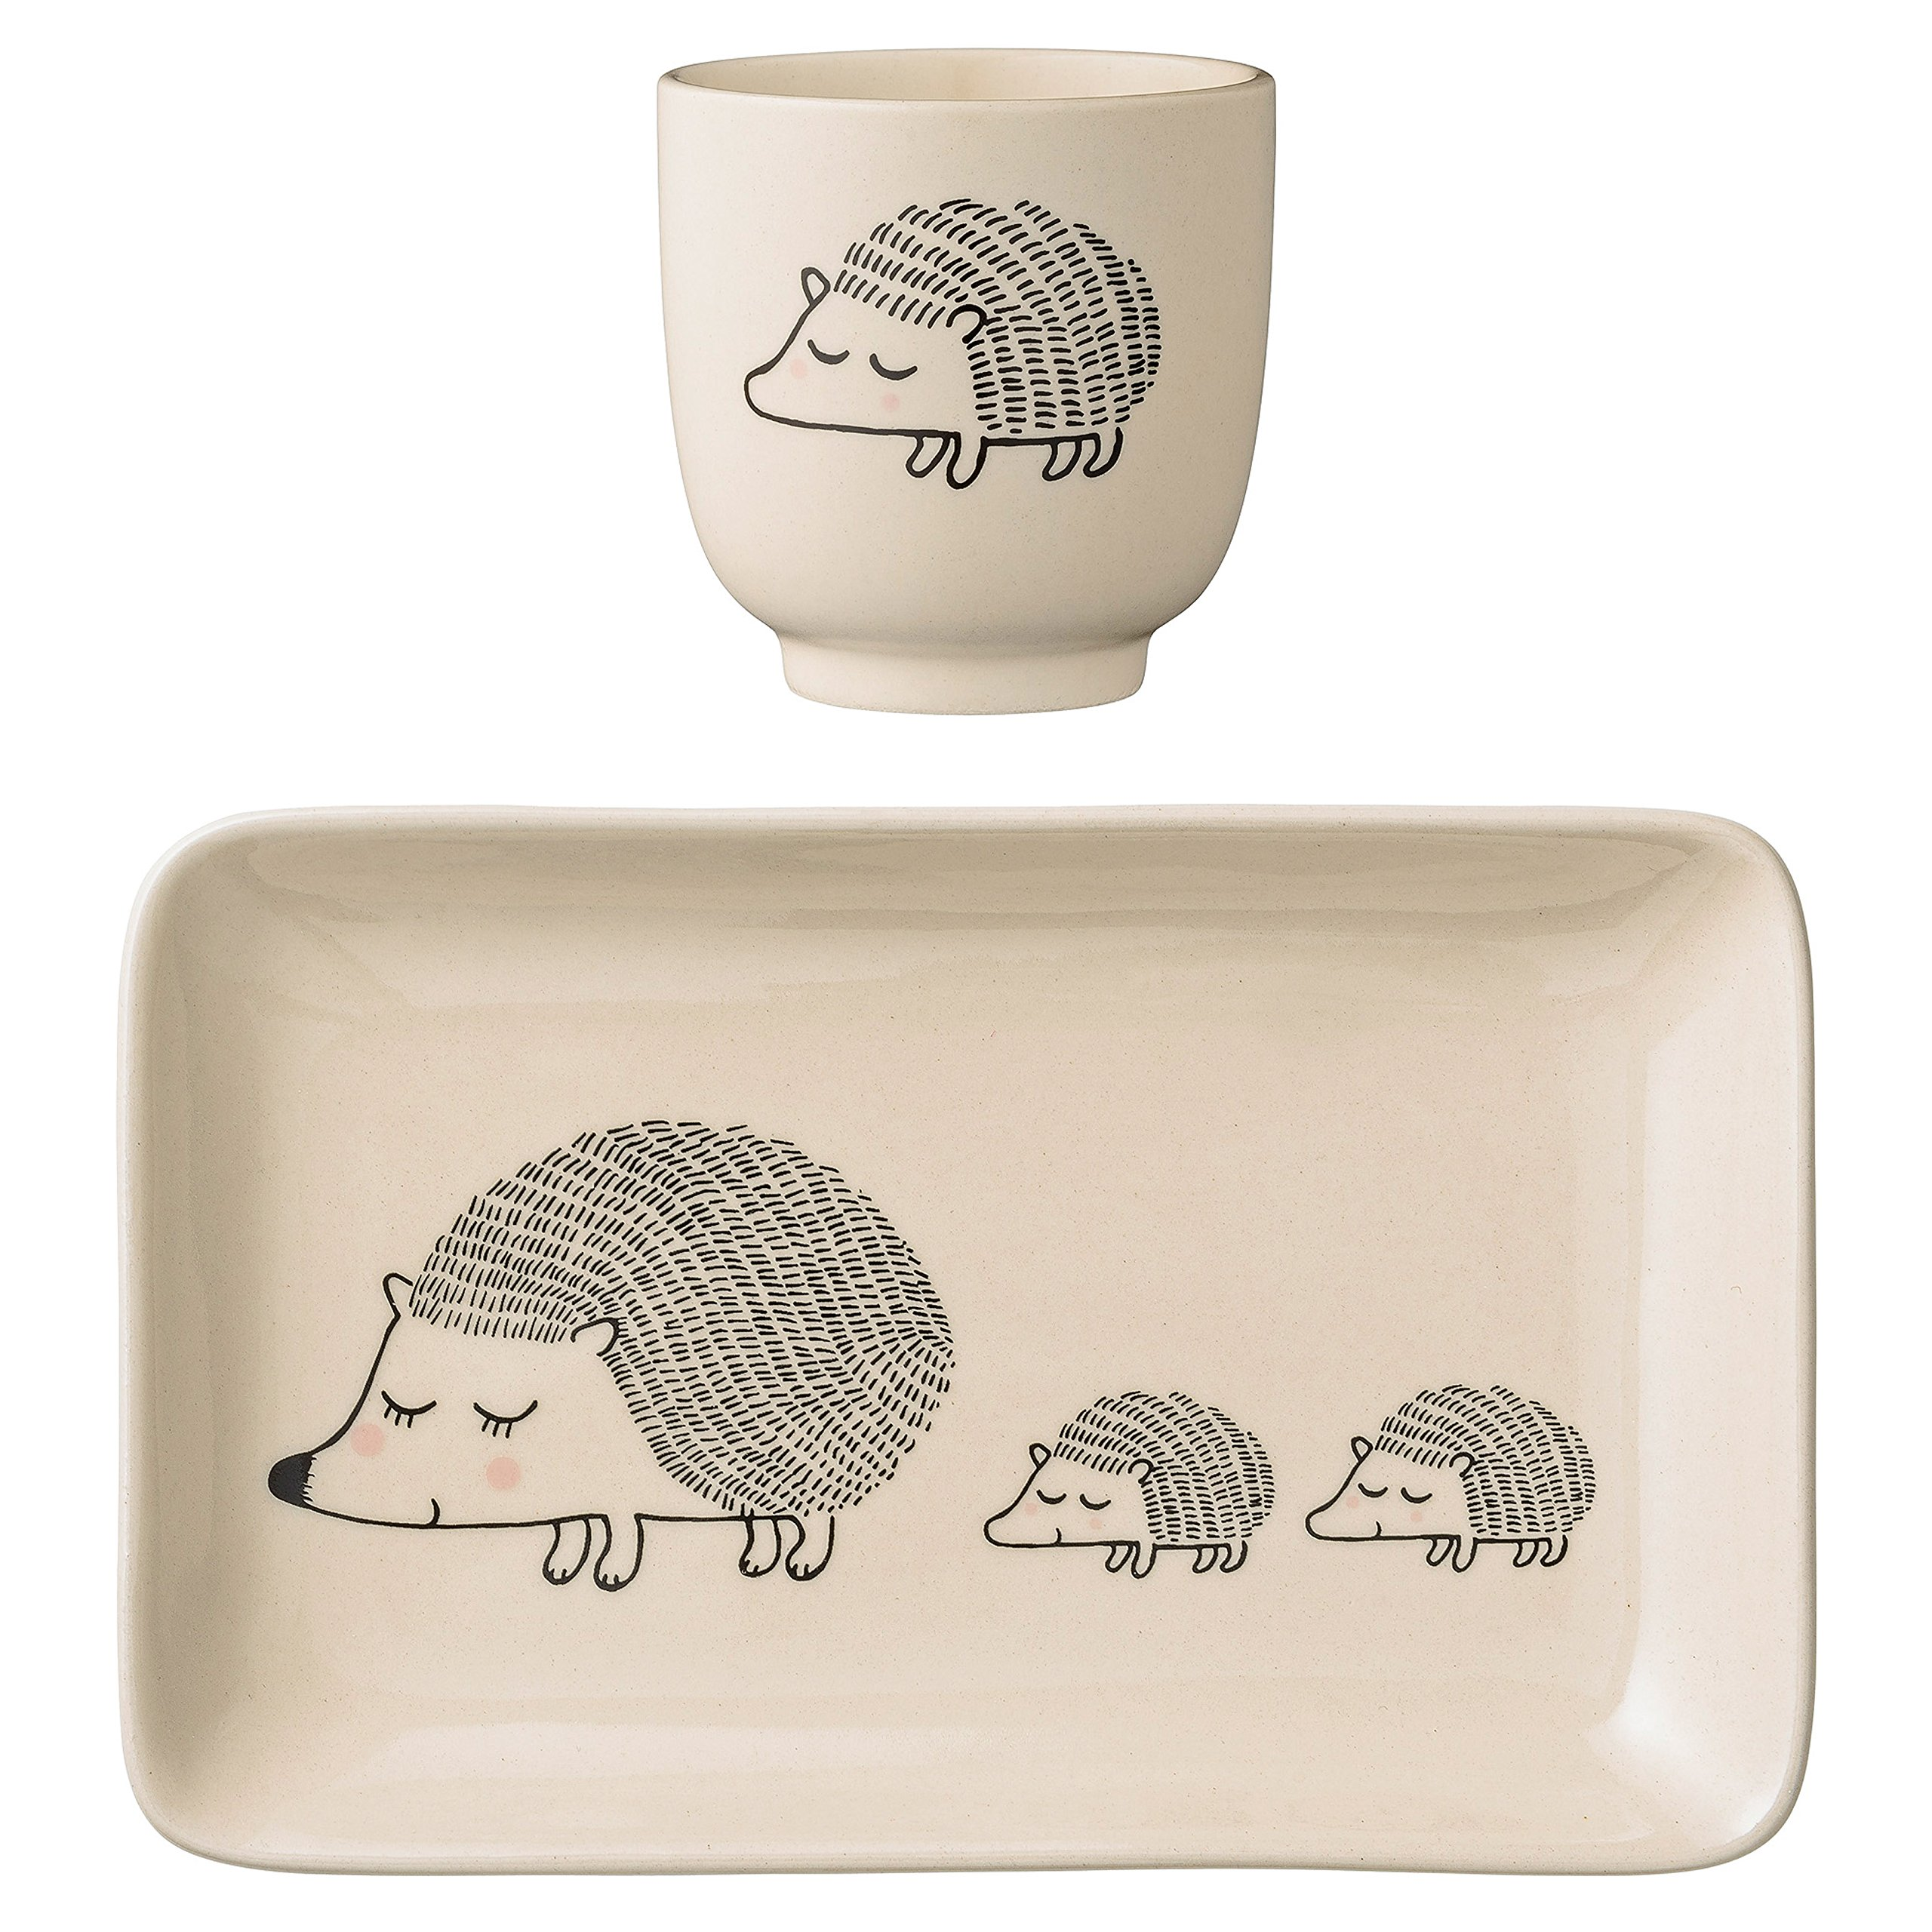 Bloomingville A21100637 Ceramic Hedgehog Plate and Cup Set, Multicolor